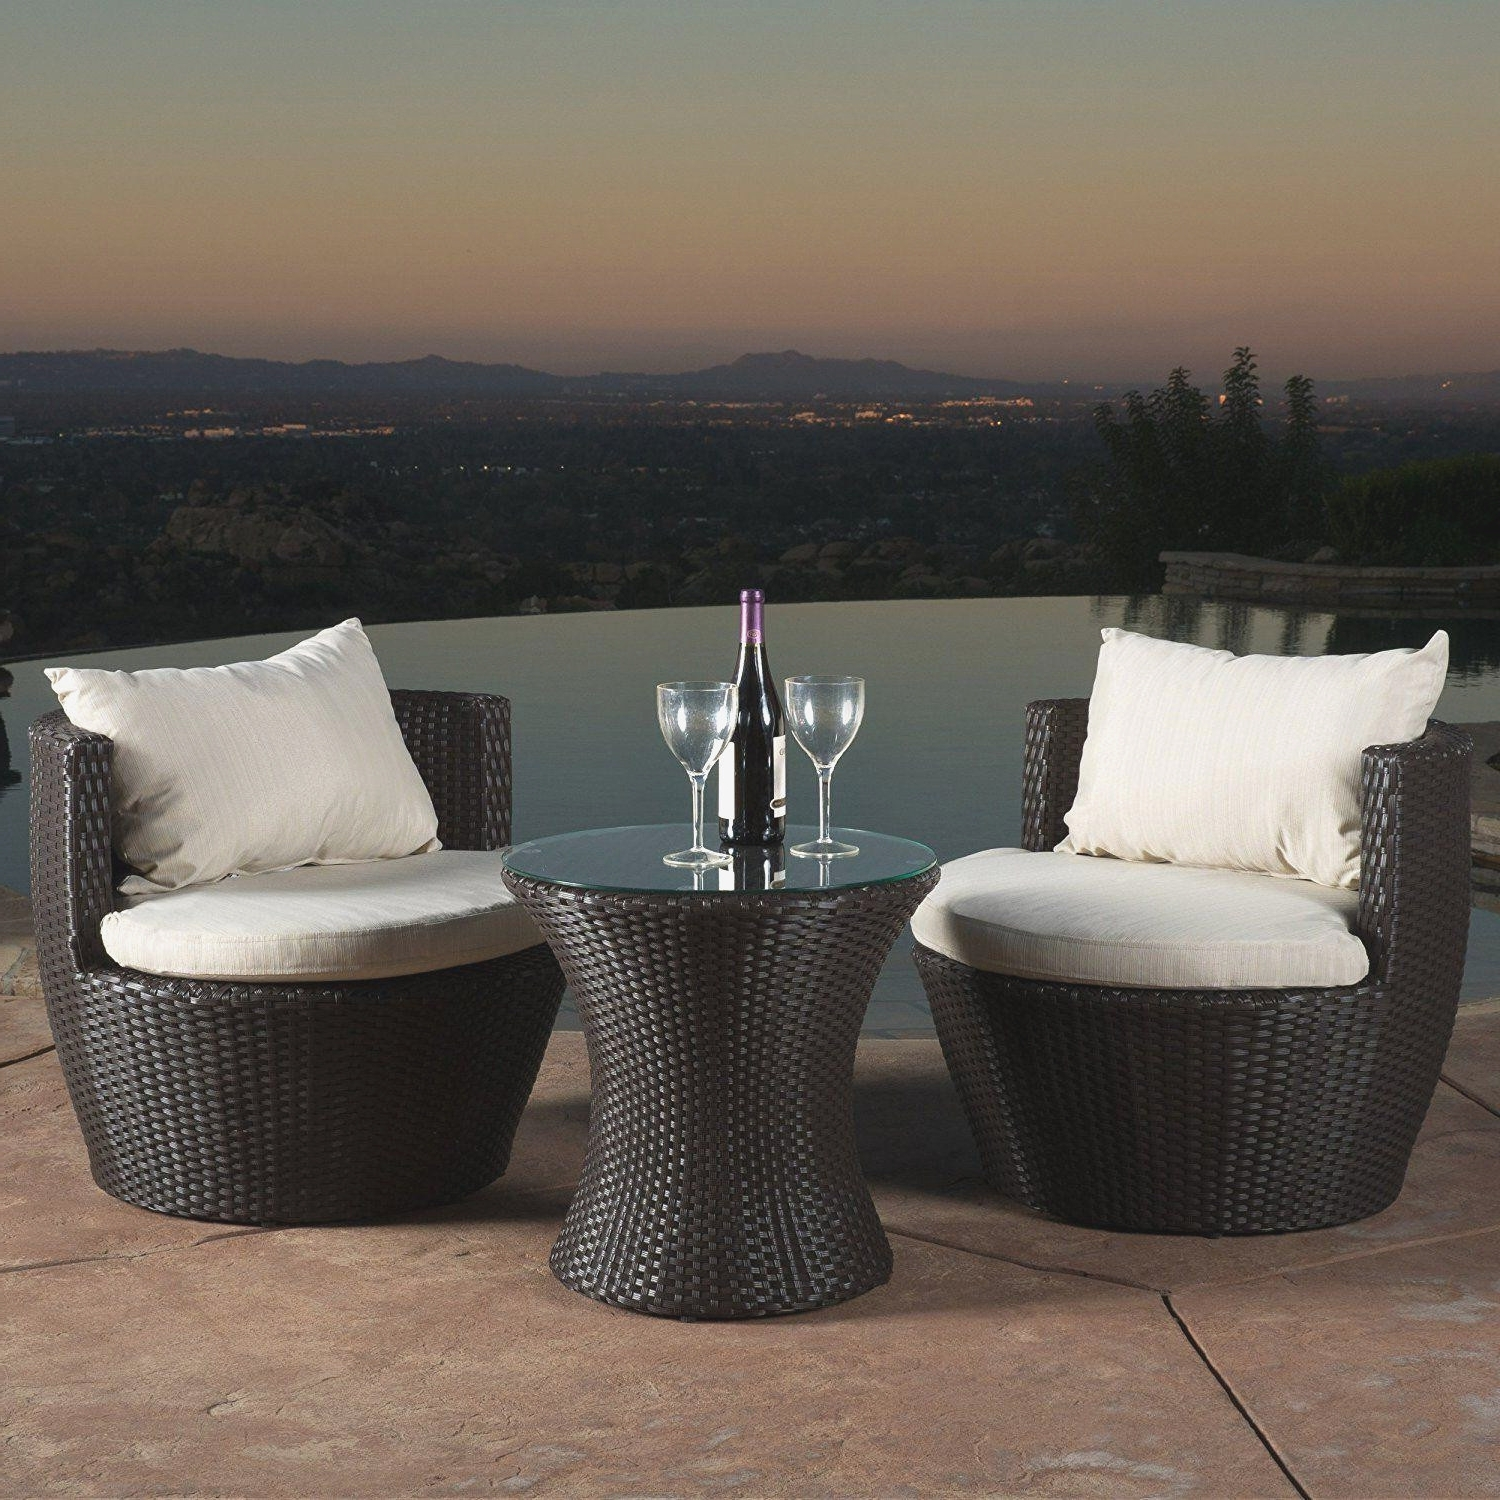 Kirkland Patio Umbrellas In Well Known Costco Outdoor Dining Awesome 30 The Best Teak Patio Furniture (View 14 of 20)